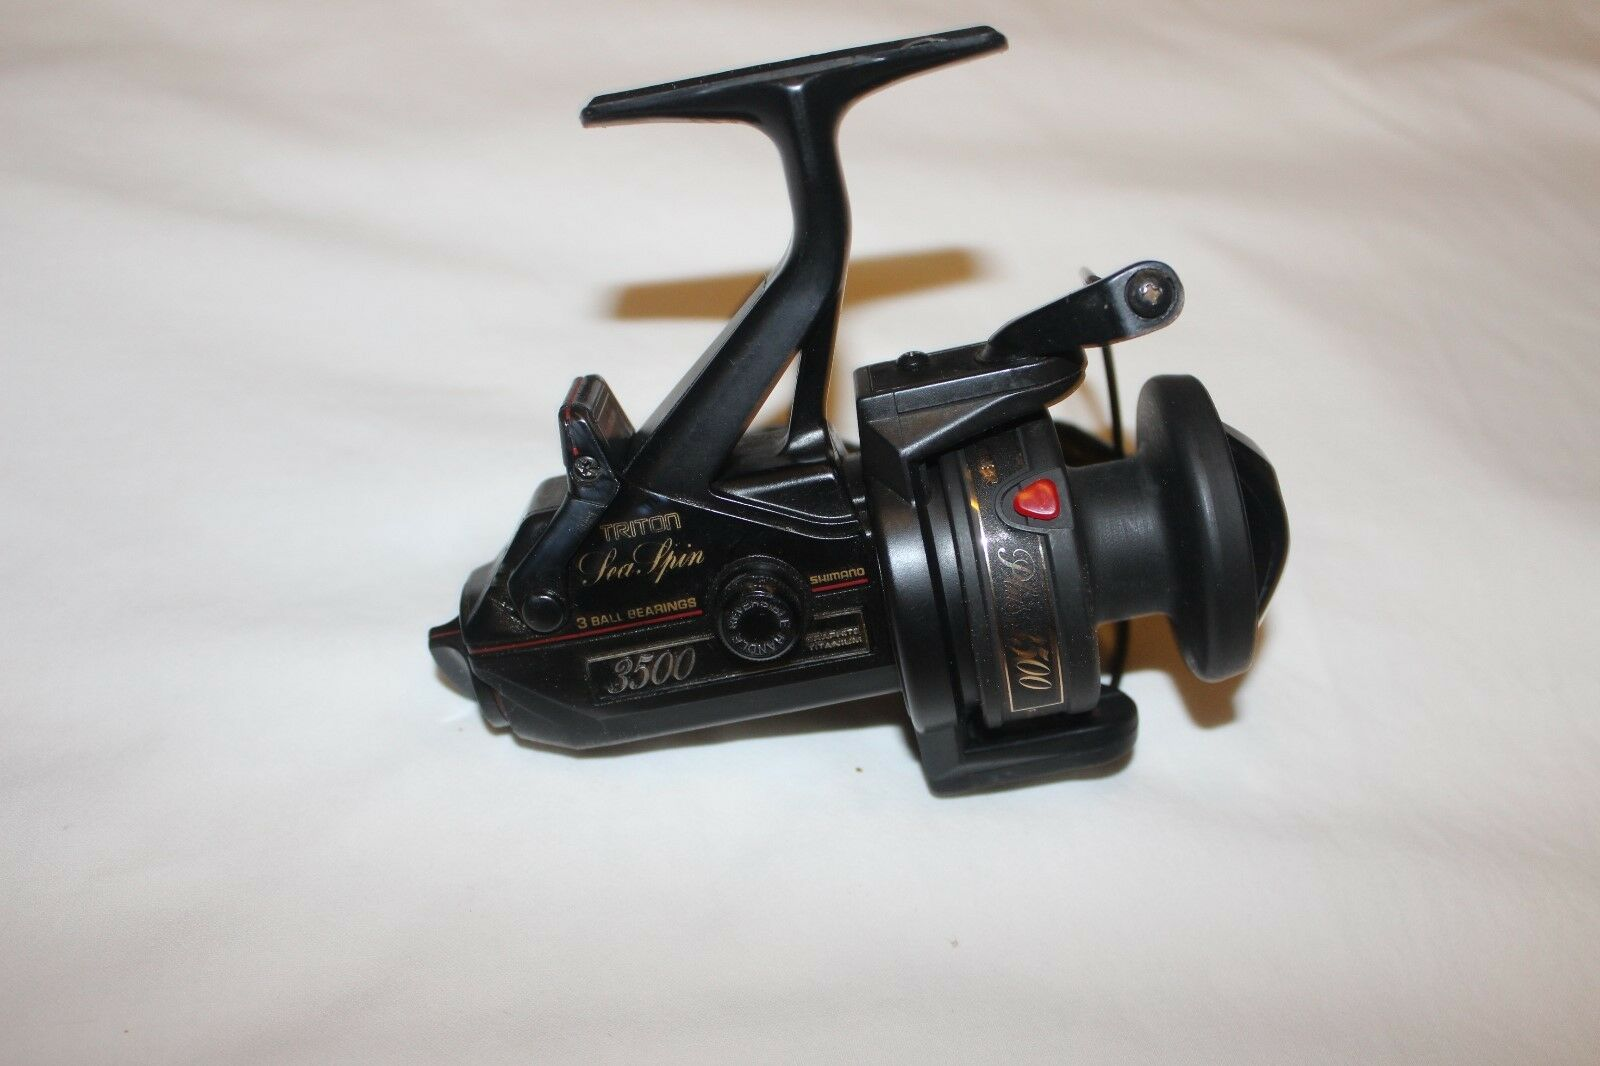 Shimano Baitrunner  3500-Made in Japan-nr-1152  order now with big discount & free delivery